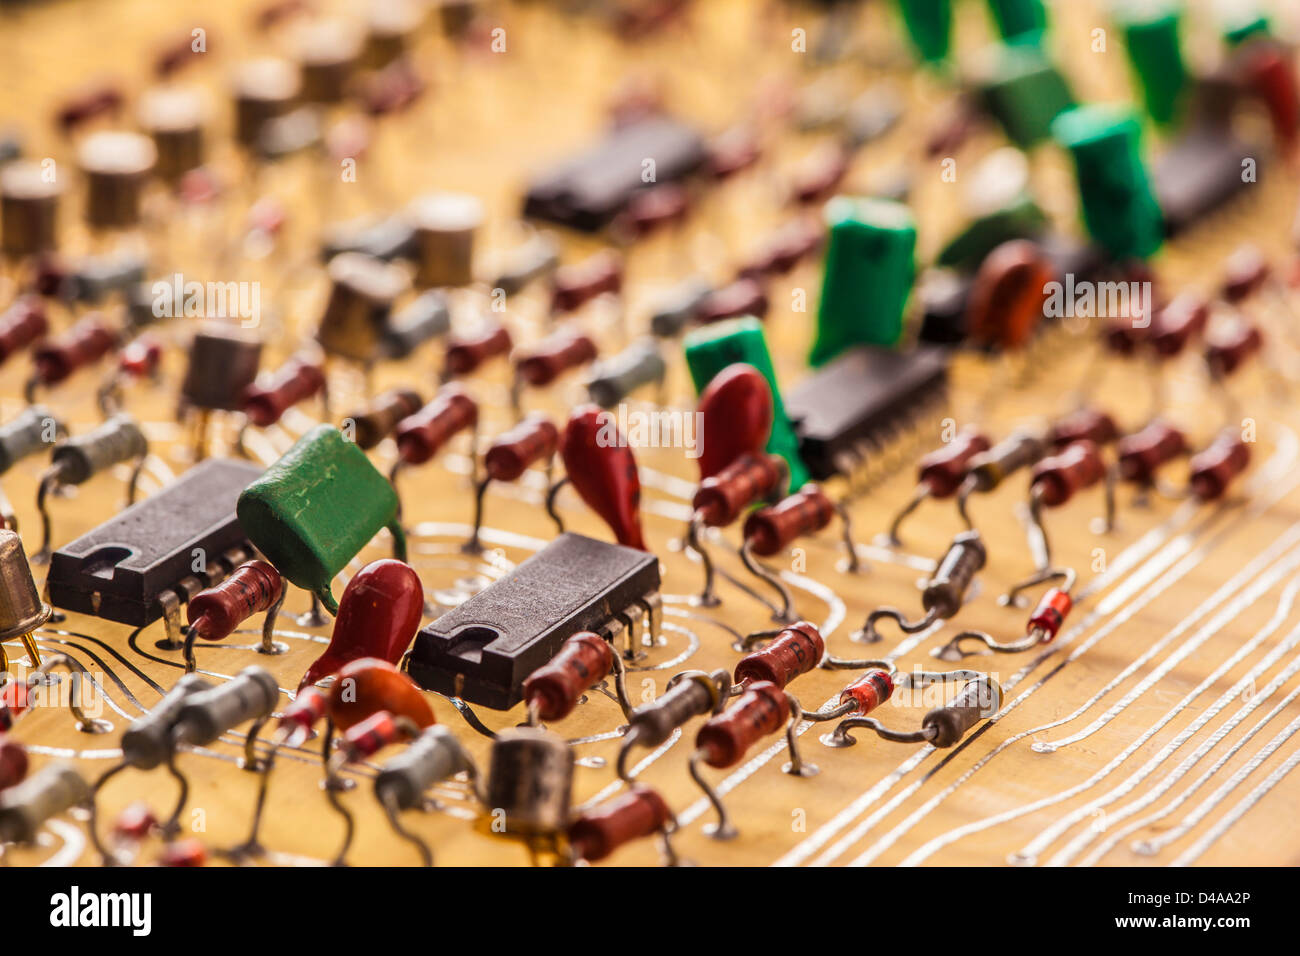 Vintage populated printed circuit board - Stock Image